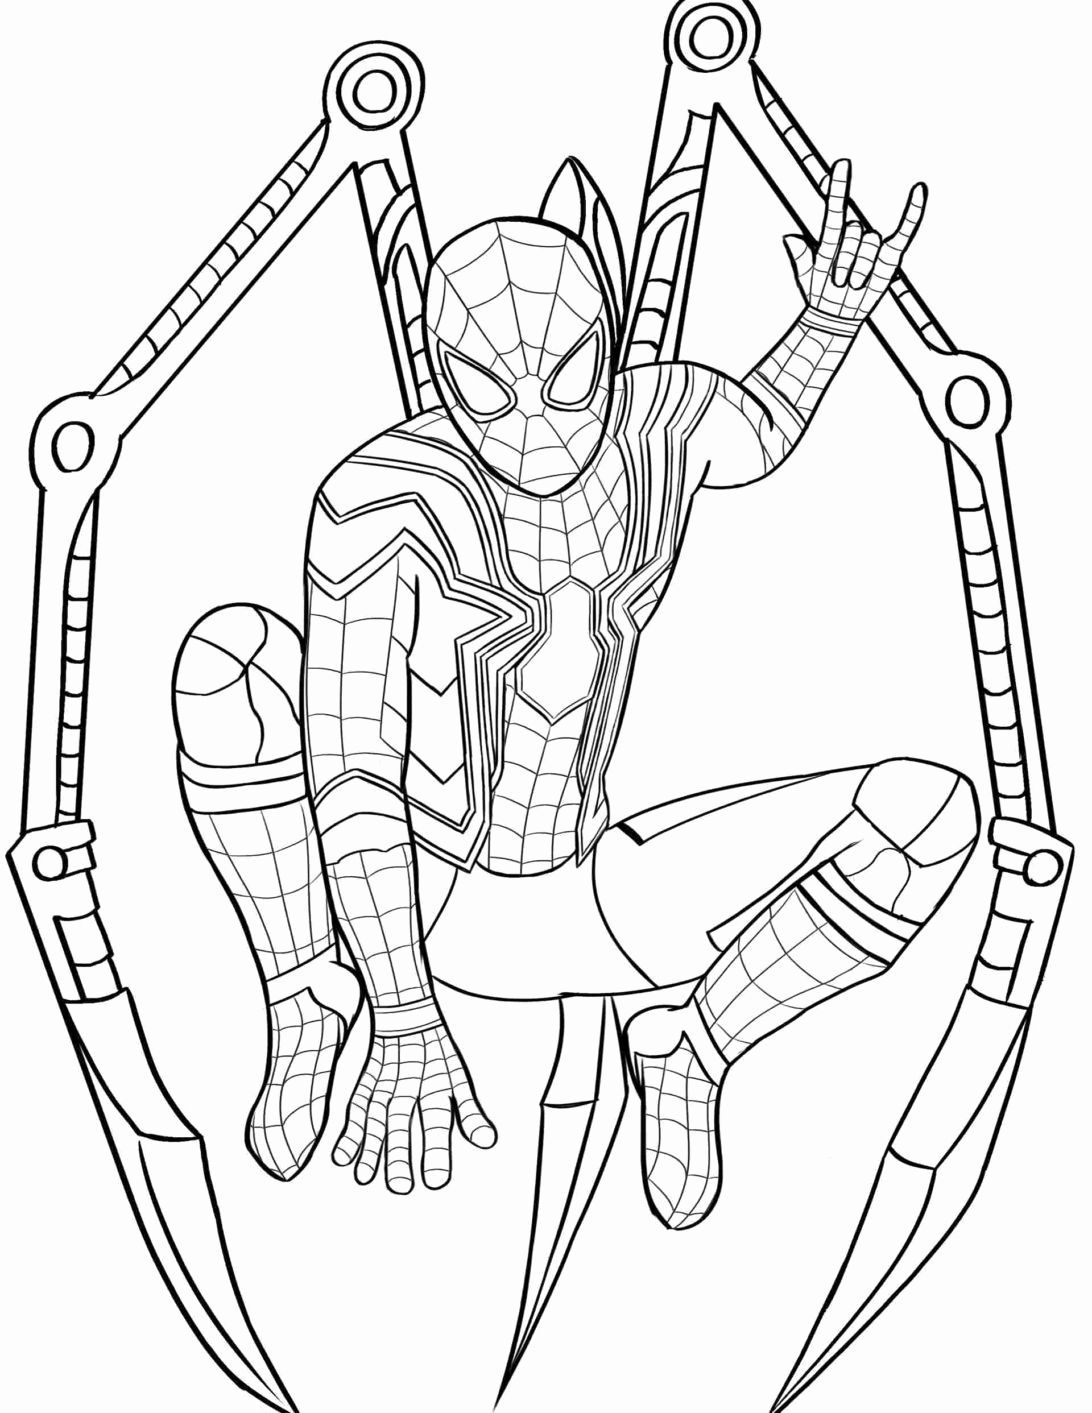 Thanos And Spiderman Coloring Pages For Kids Coloring Pages Marvelous Image Free Spiderman Col In 2020 Avengers Coloring Pages Spider Coloring Page Spiderman Coloring